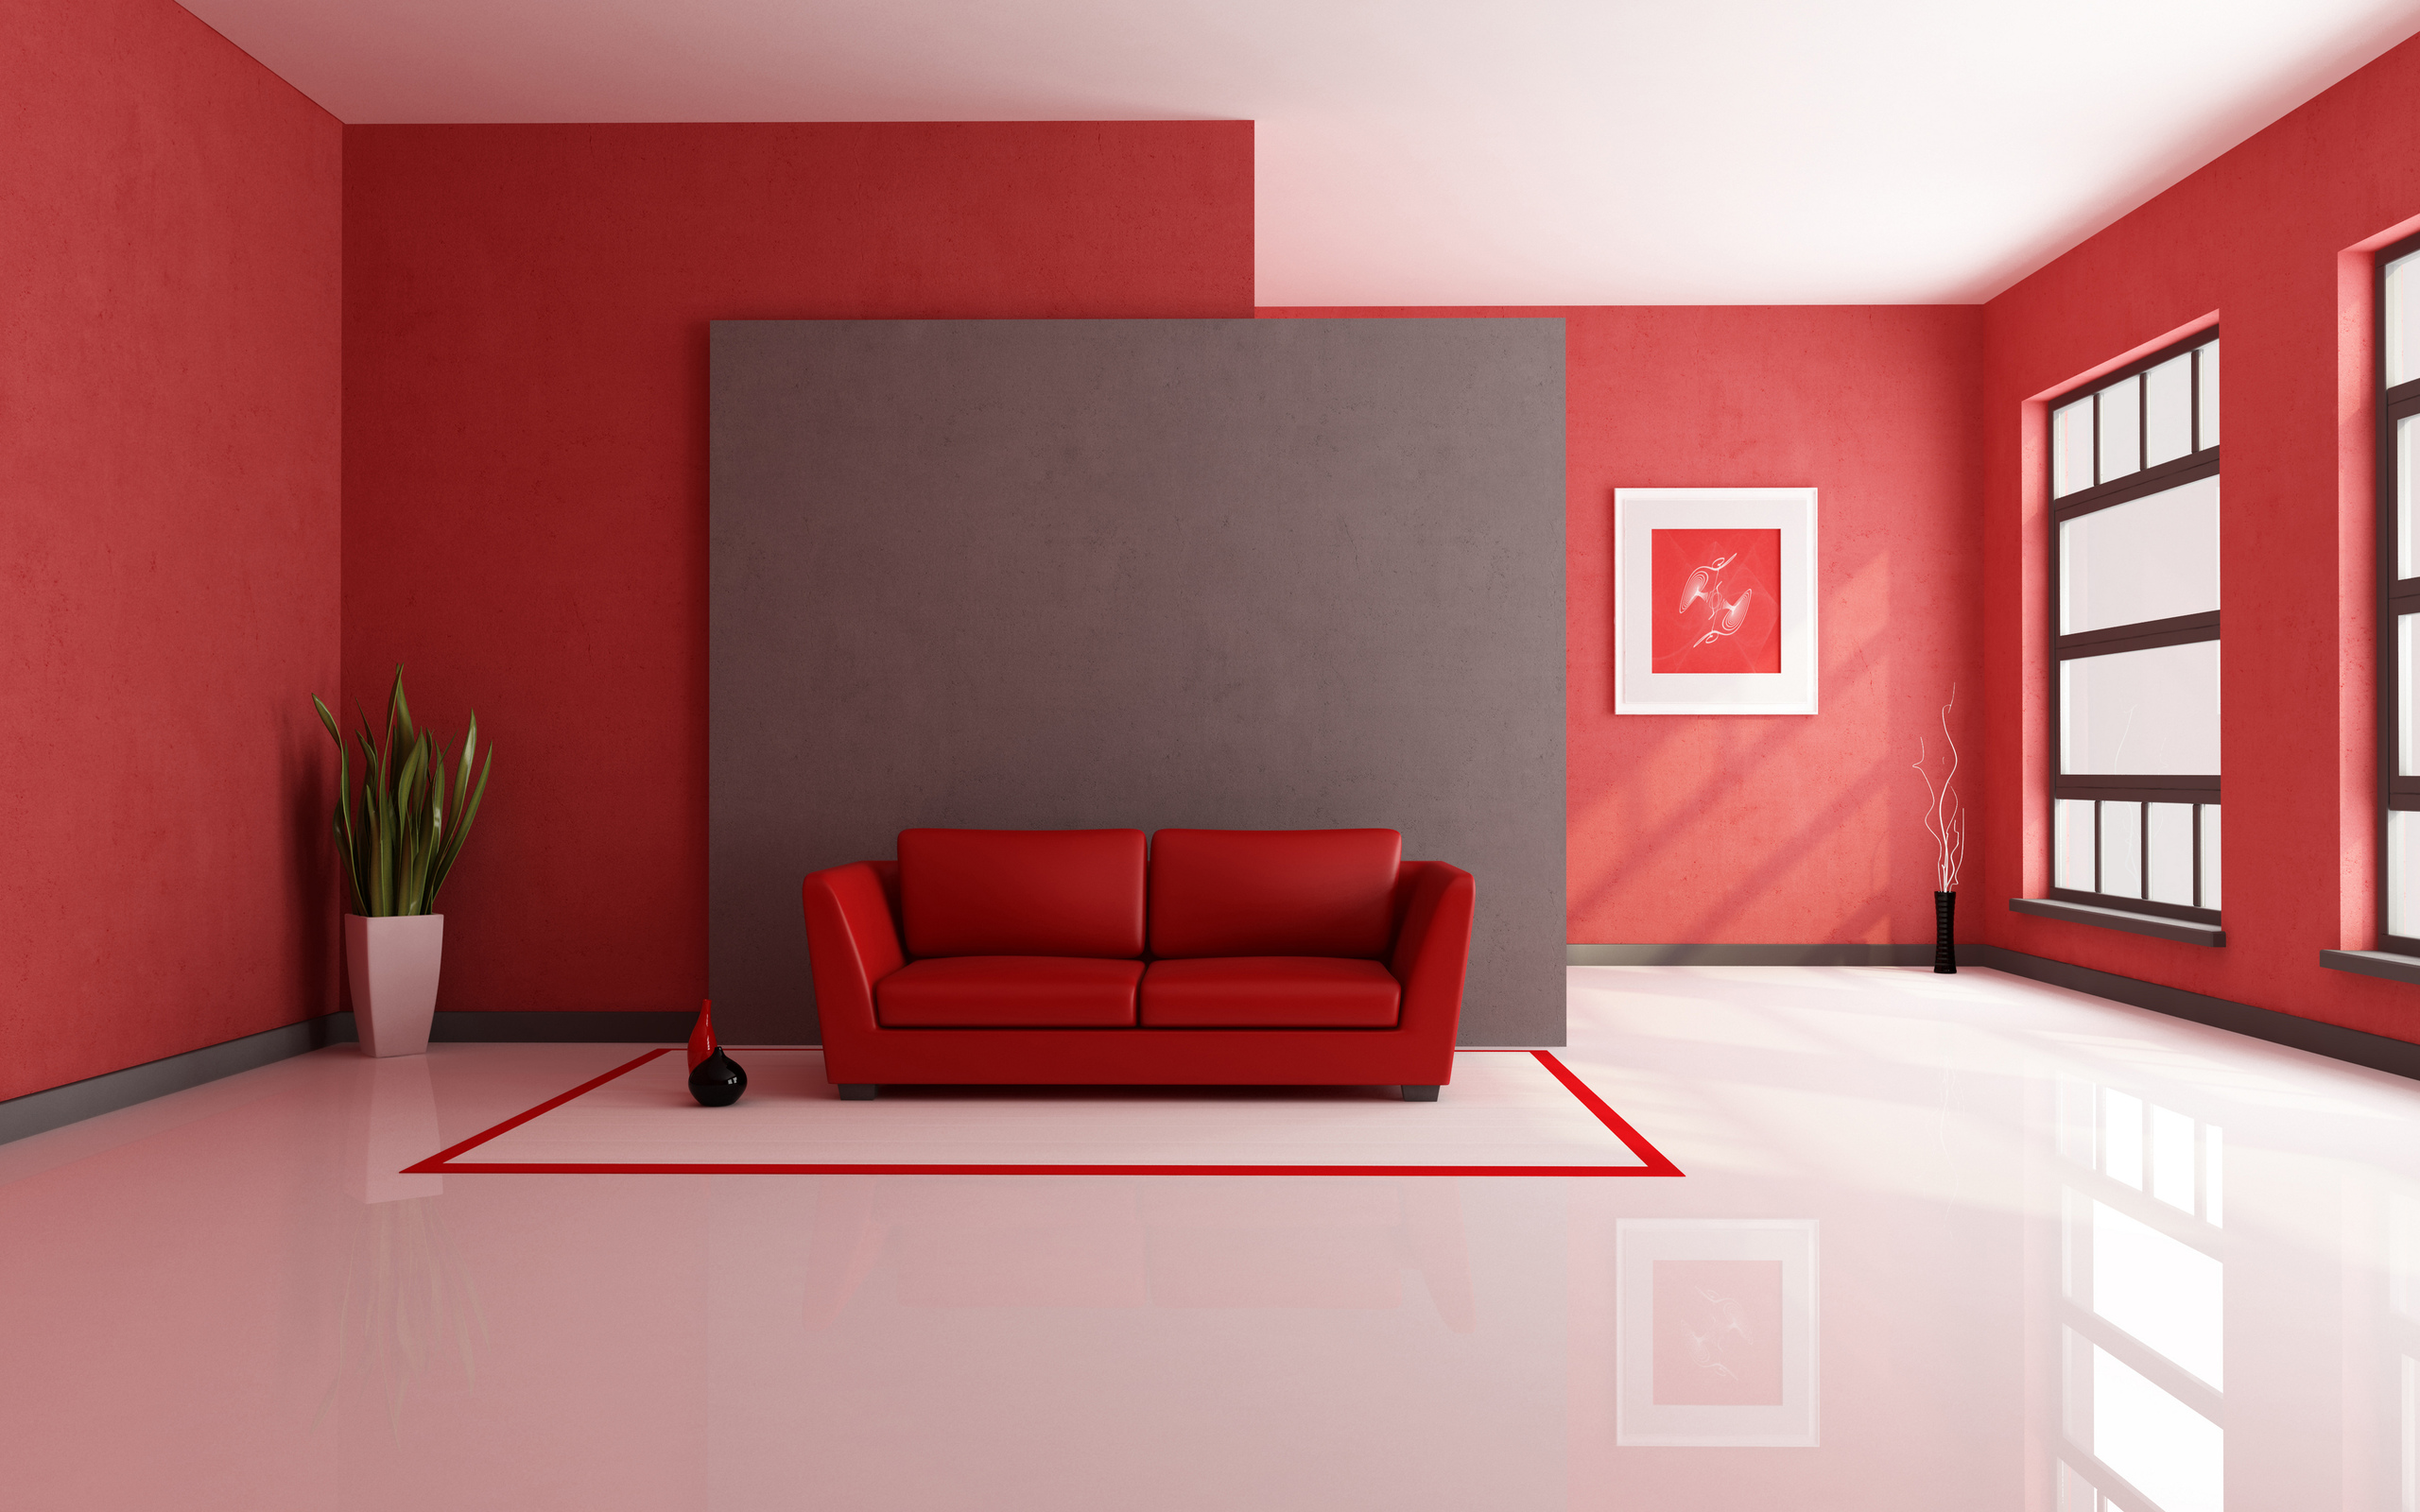 50 Best Interior Design For Your Home  The WoW Style